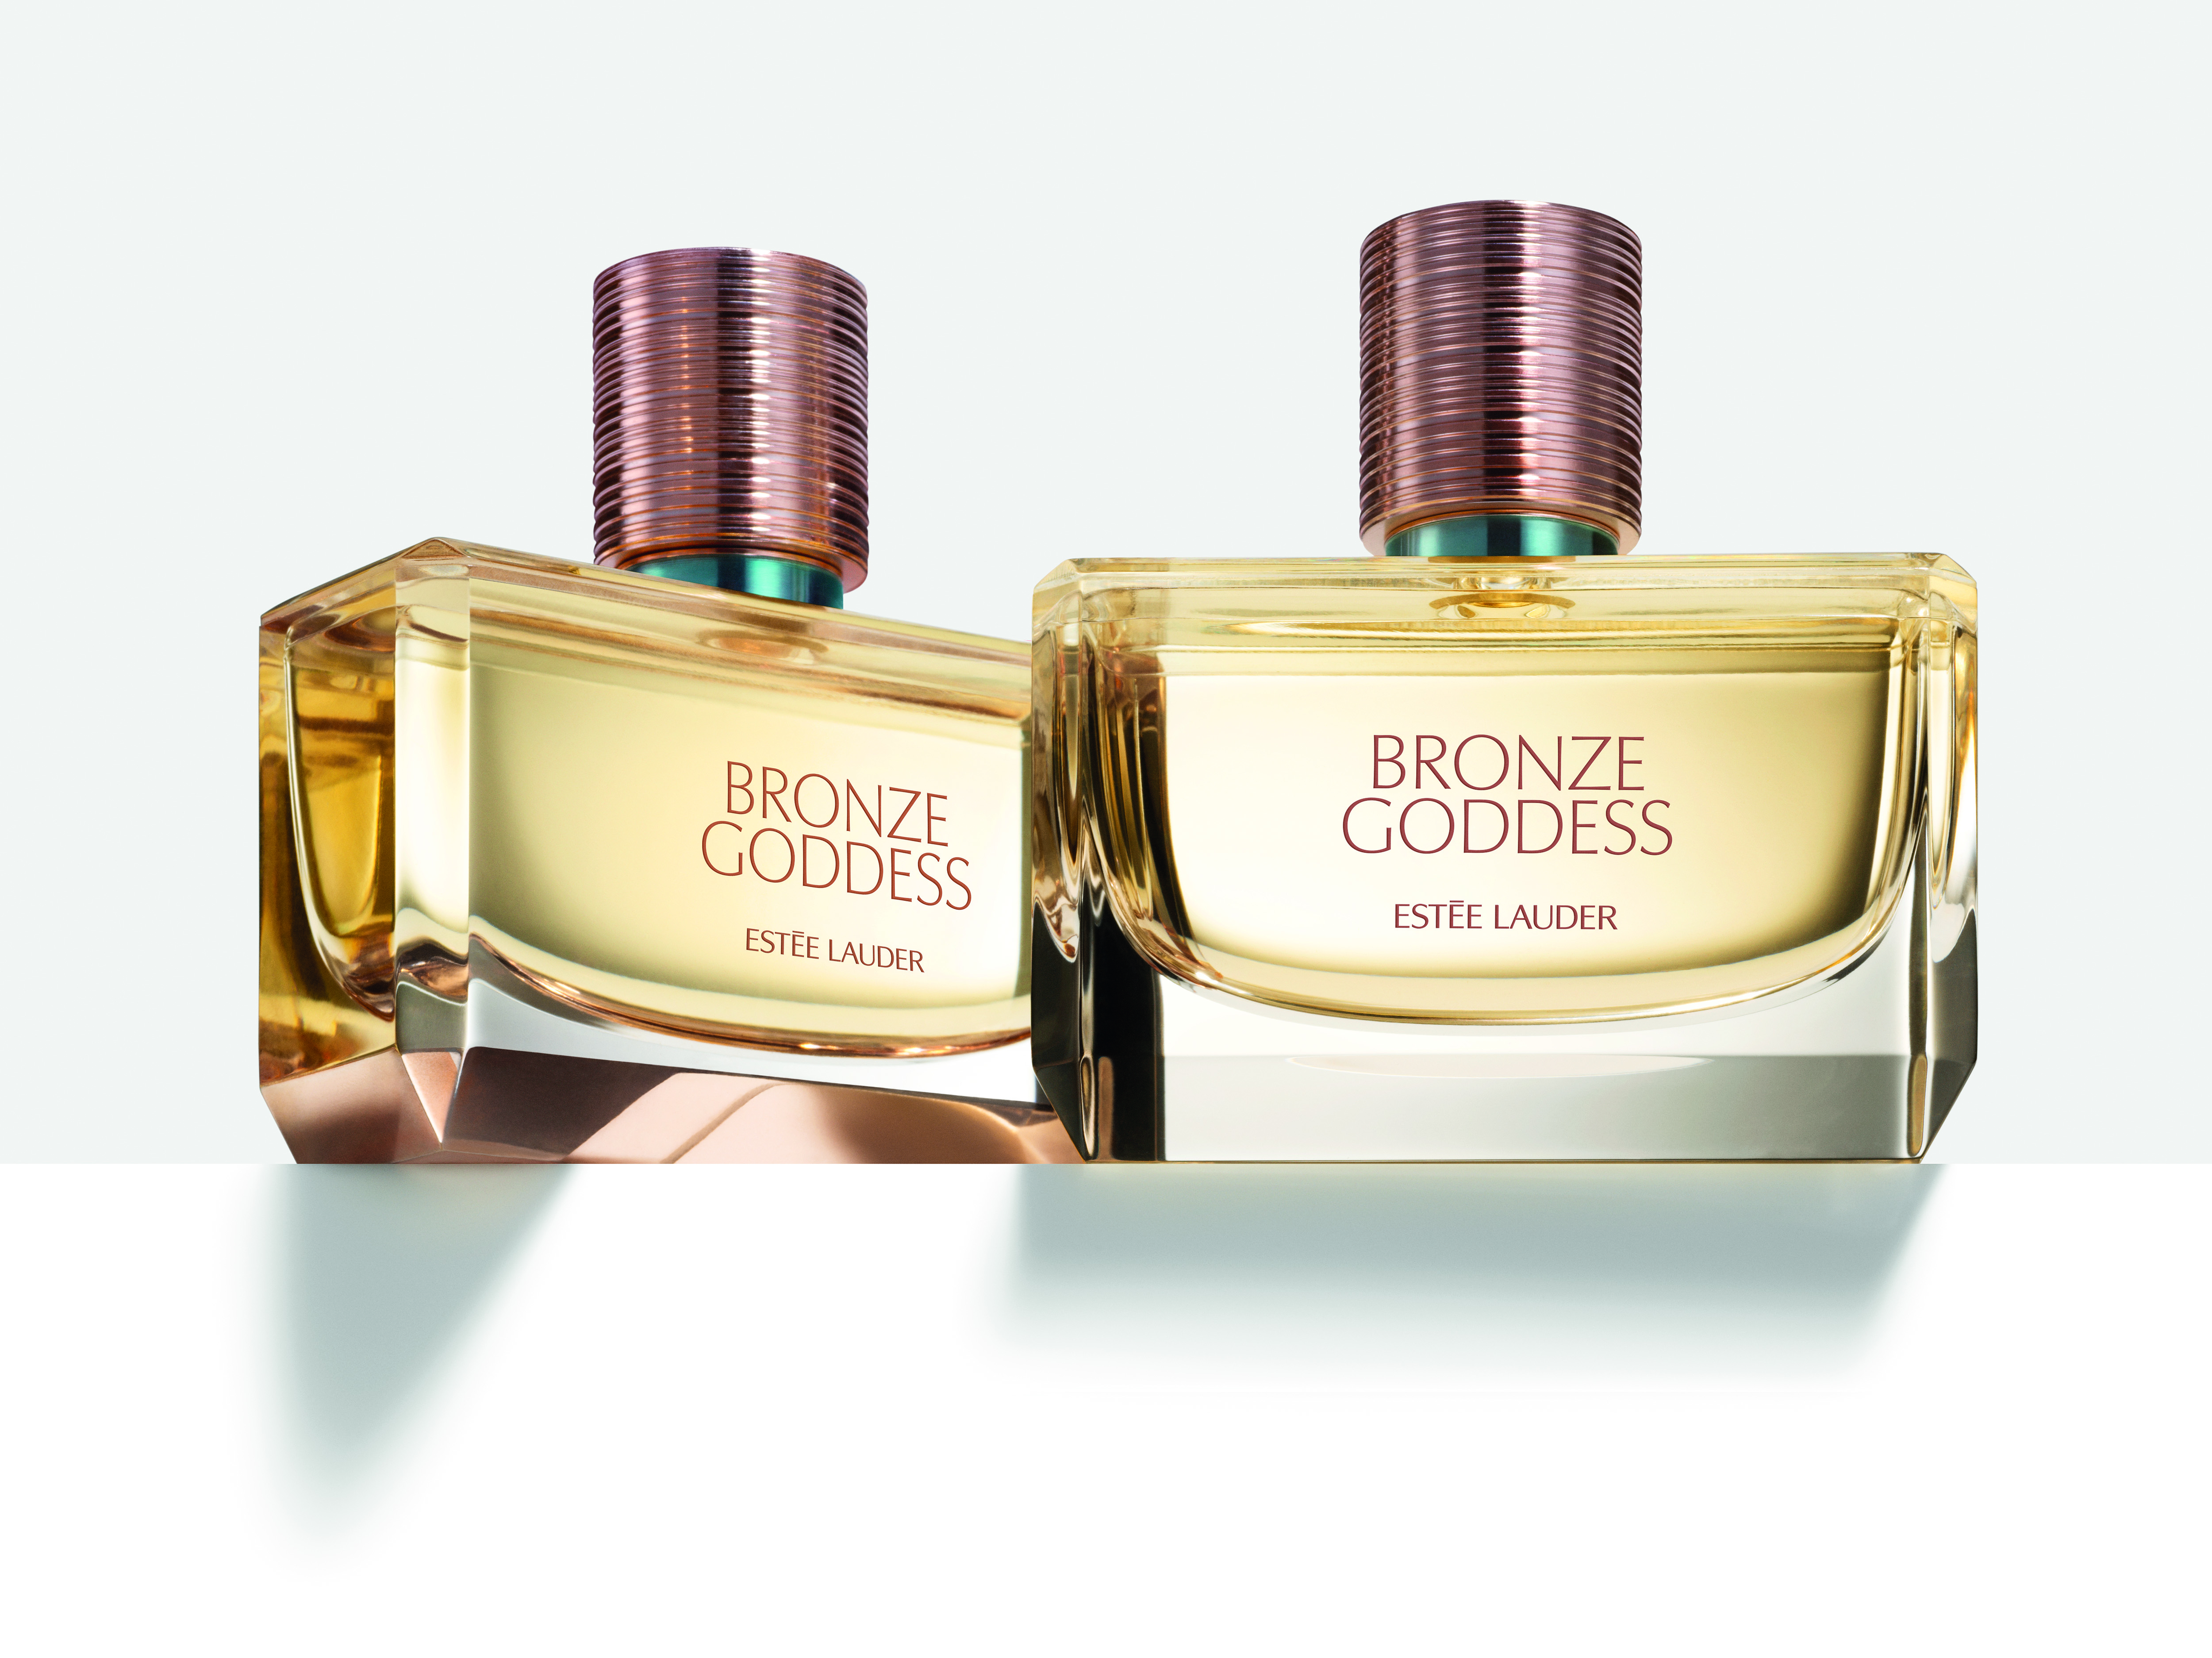 Bronze Goddess_Product on White_EDP + Eau Fraiche_Global_Expiry March 2020